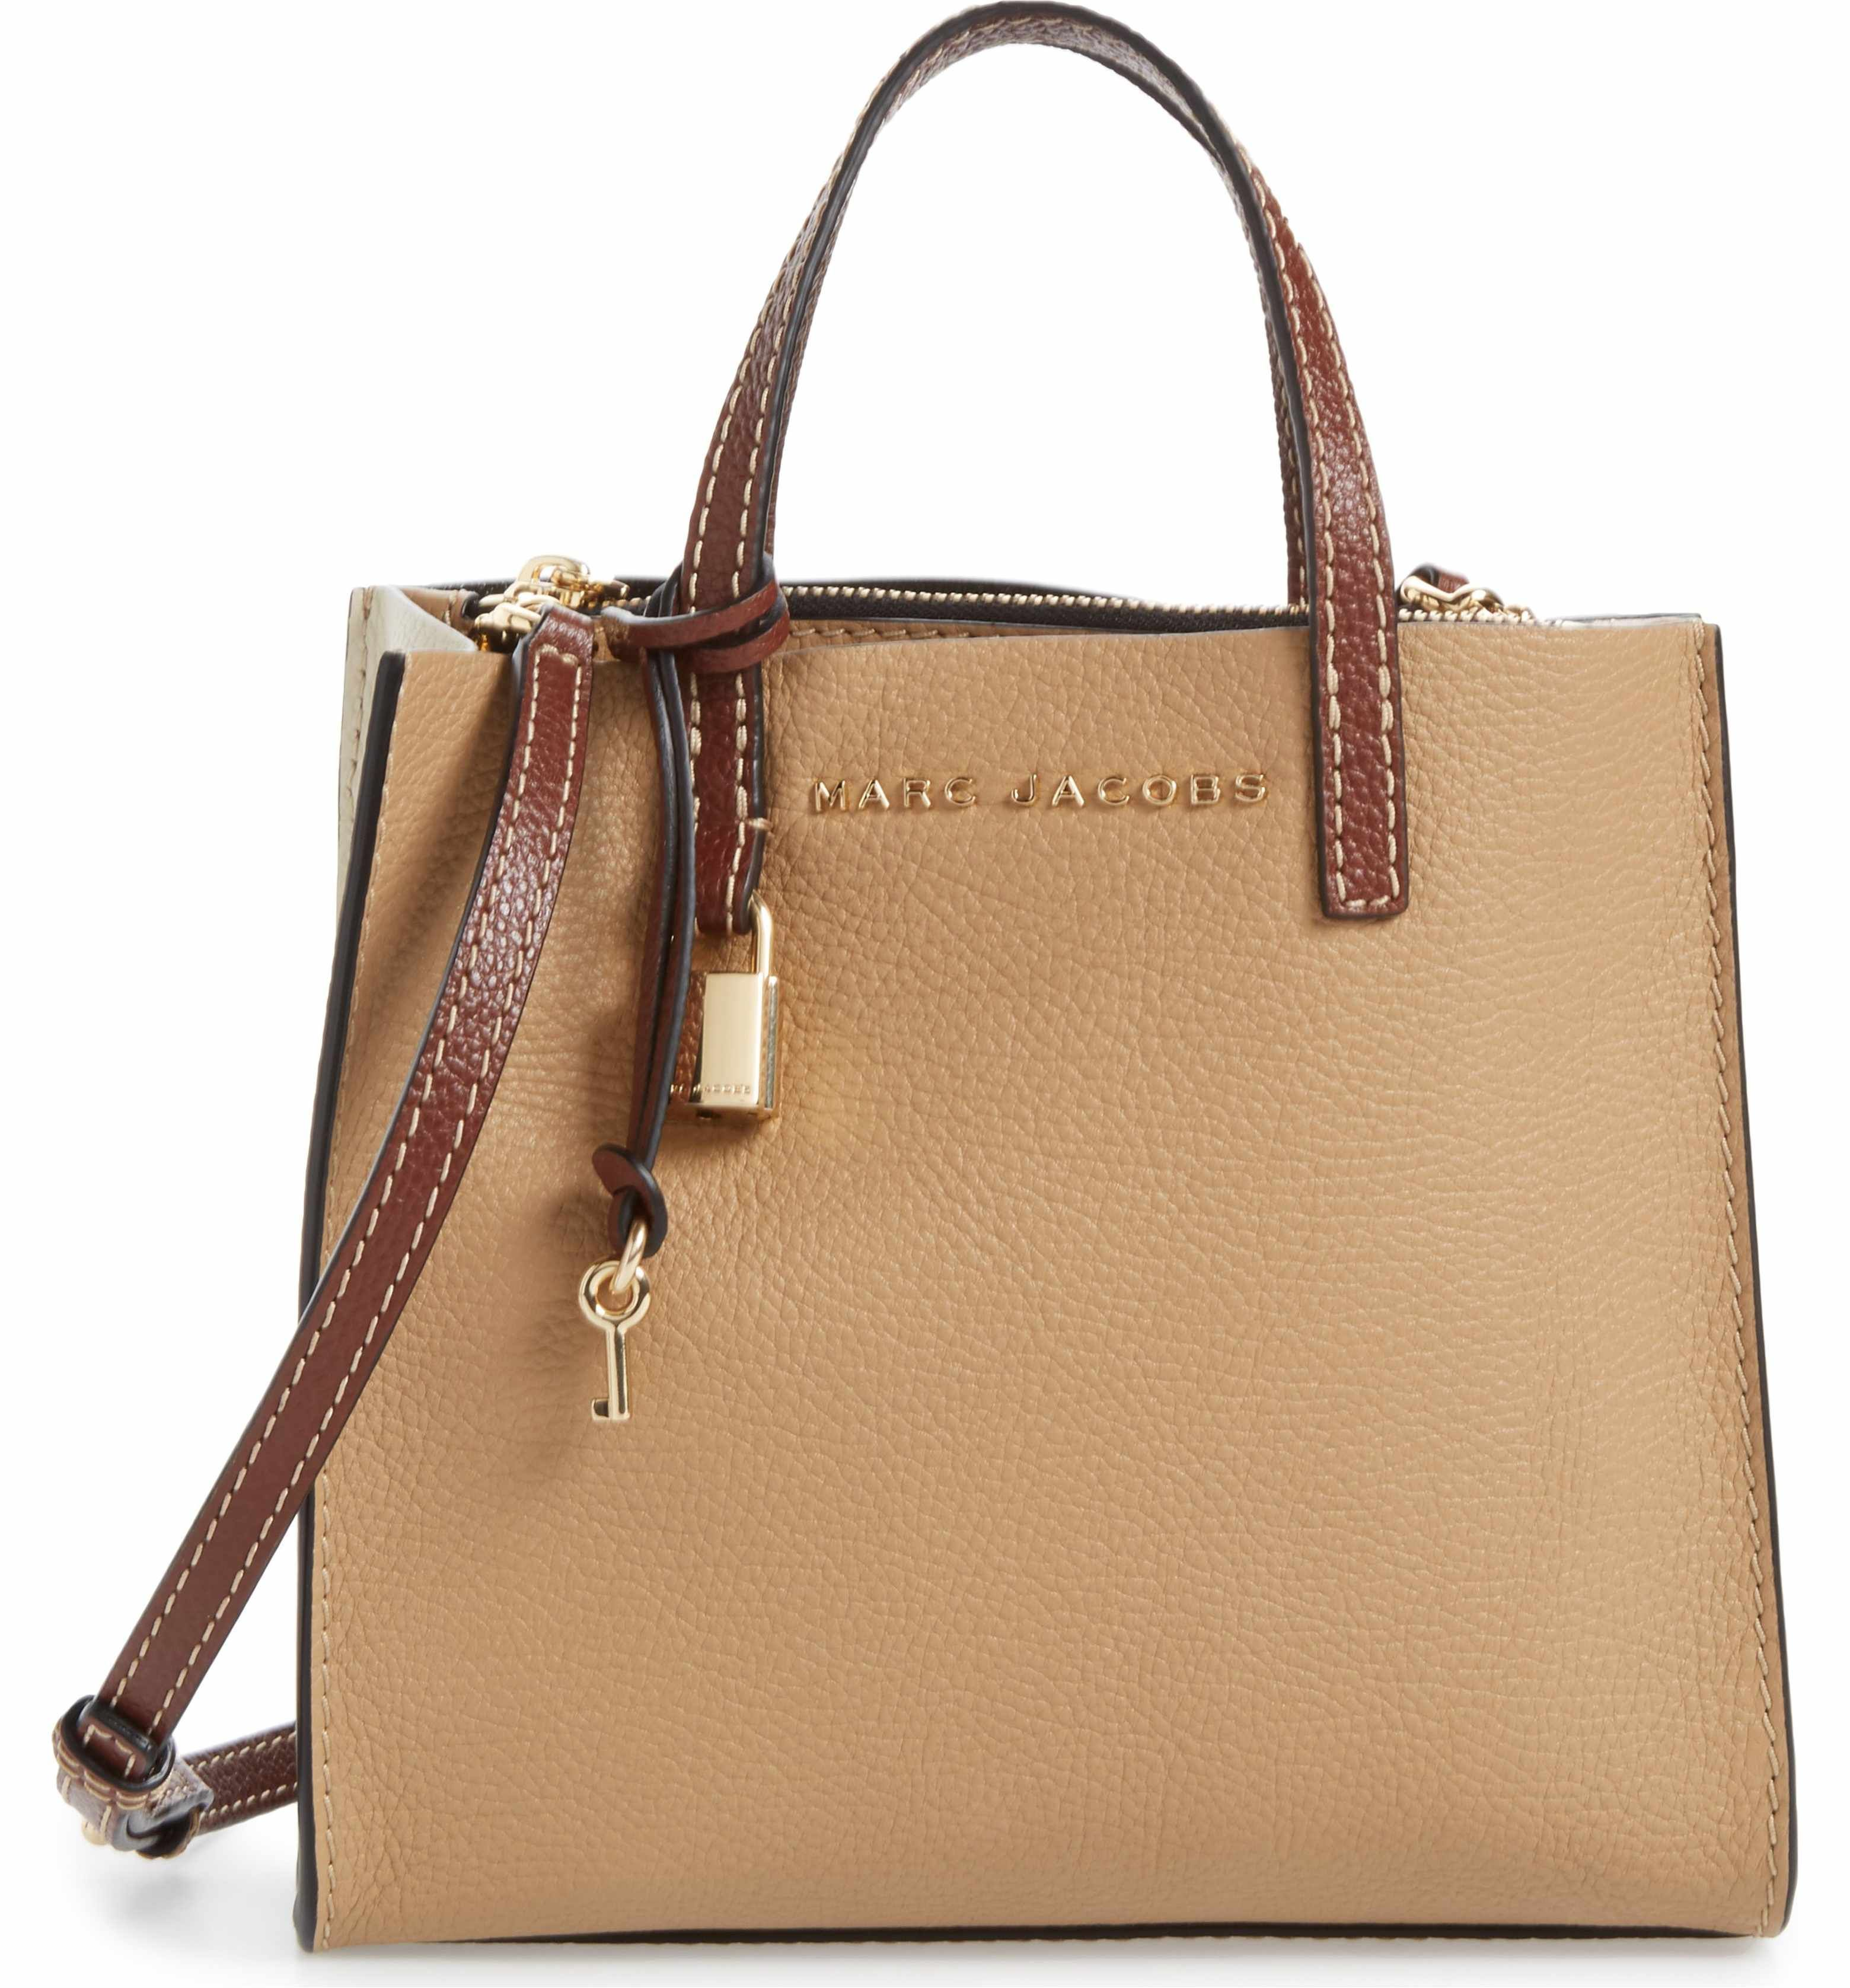 aa1e4d691749 Main Image - MARC JACOBS The Grind Mini Colorblock Leather Tote ...